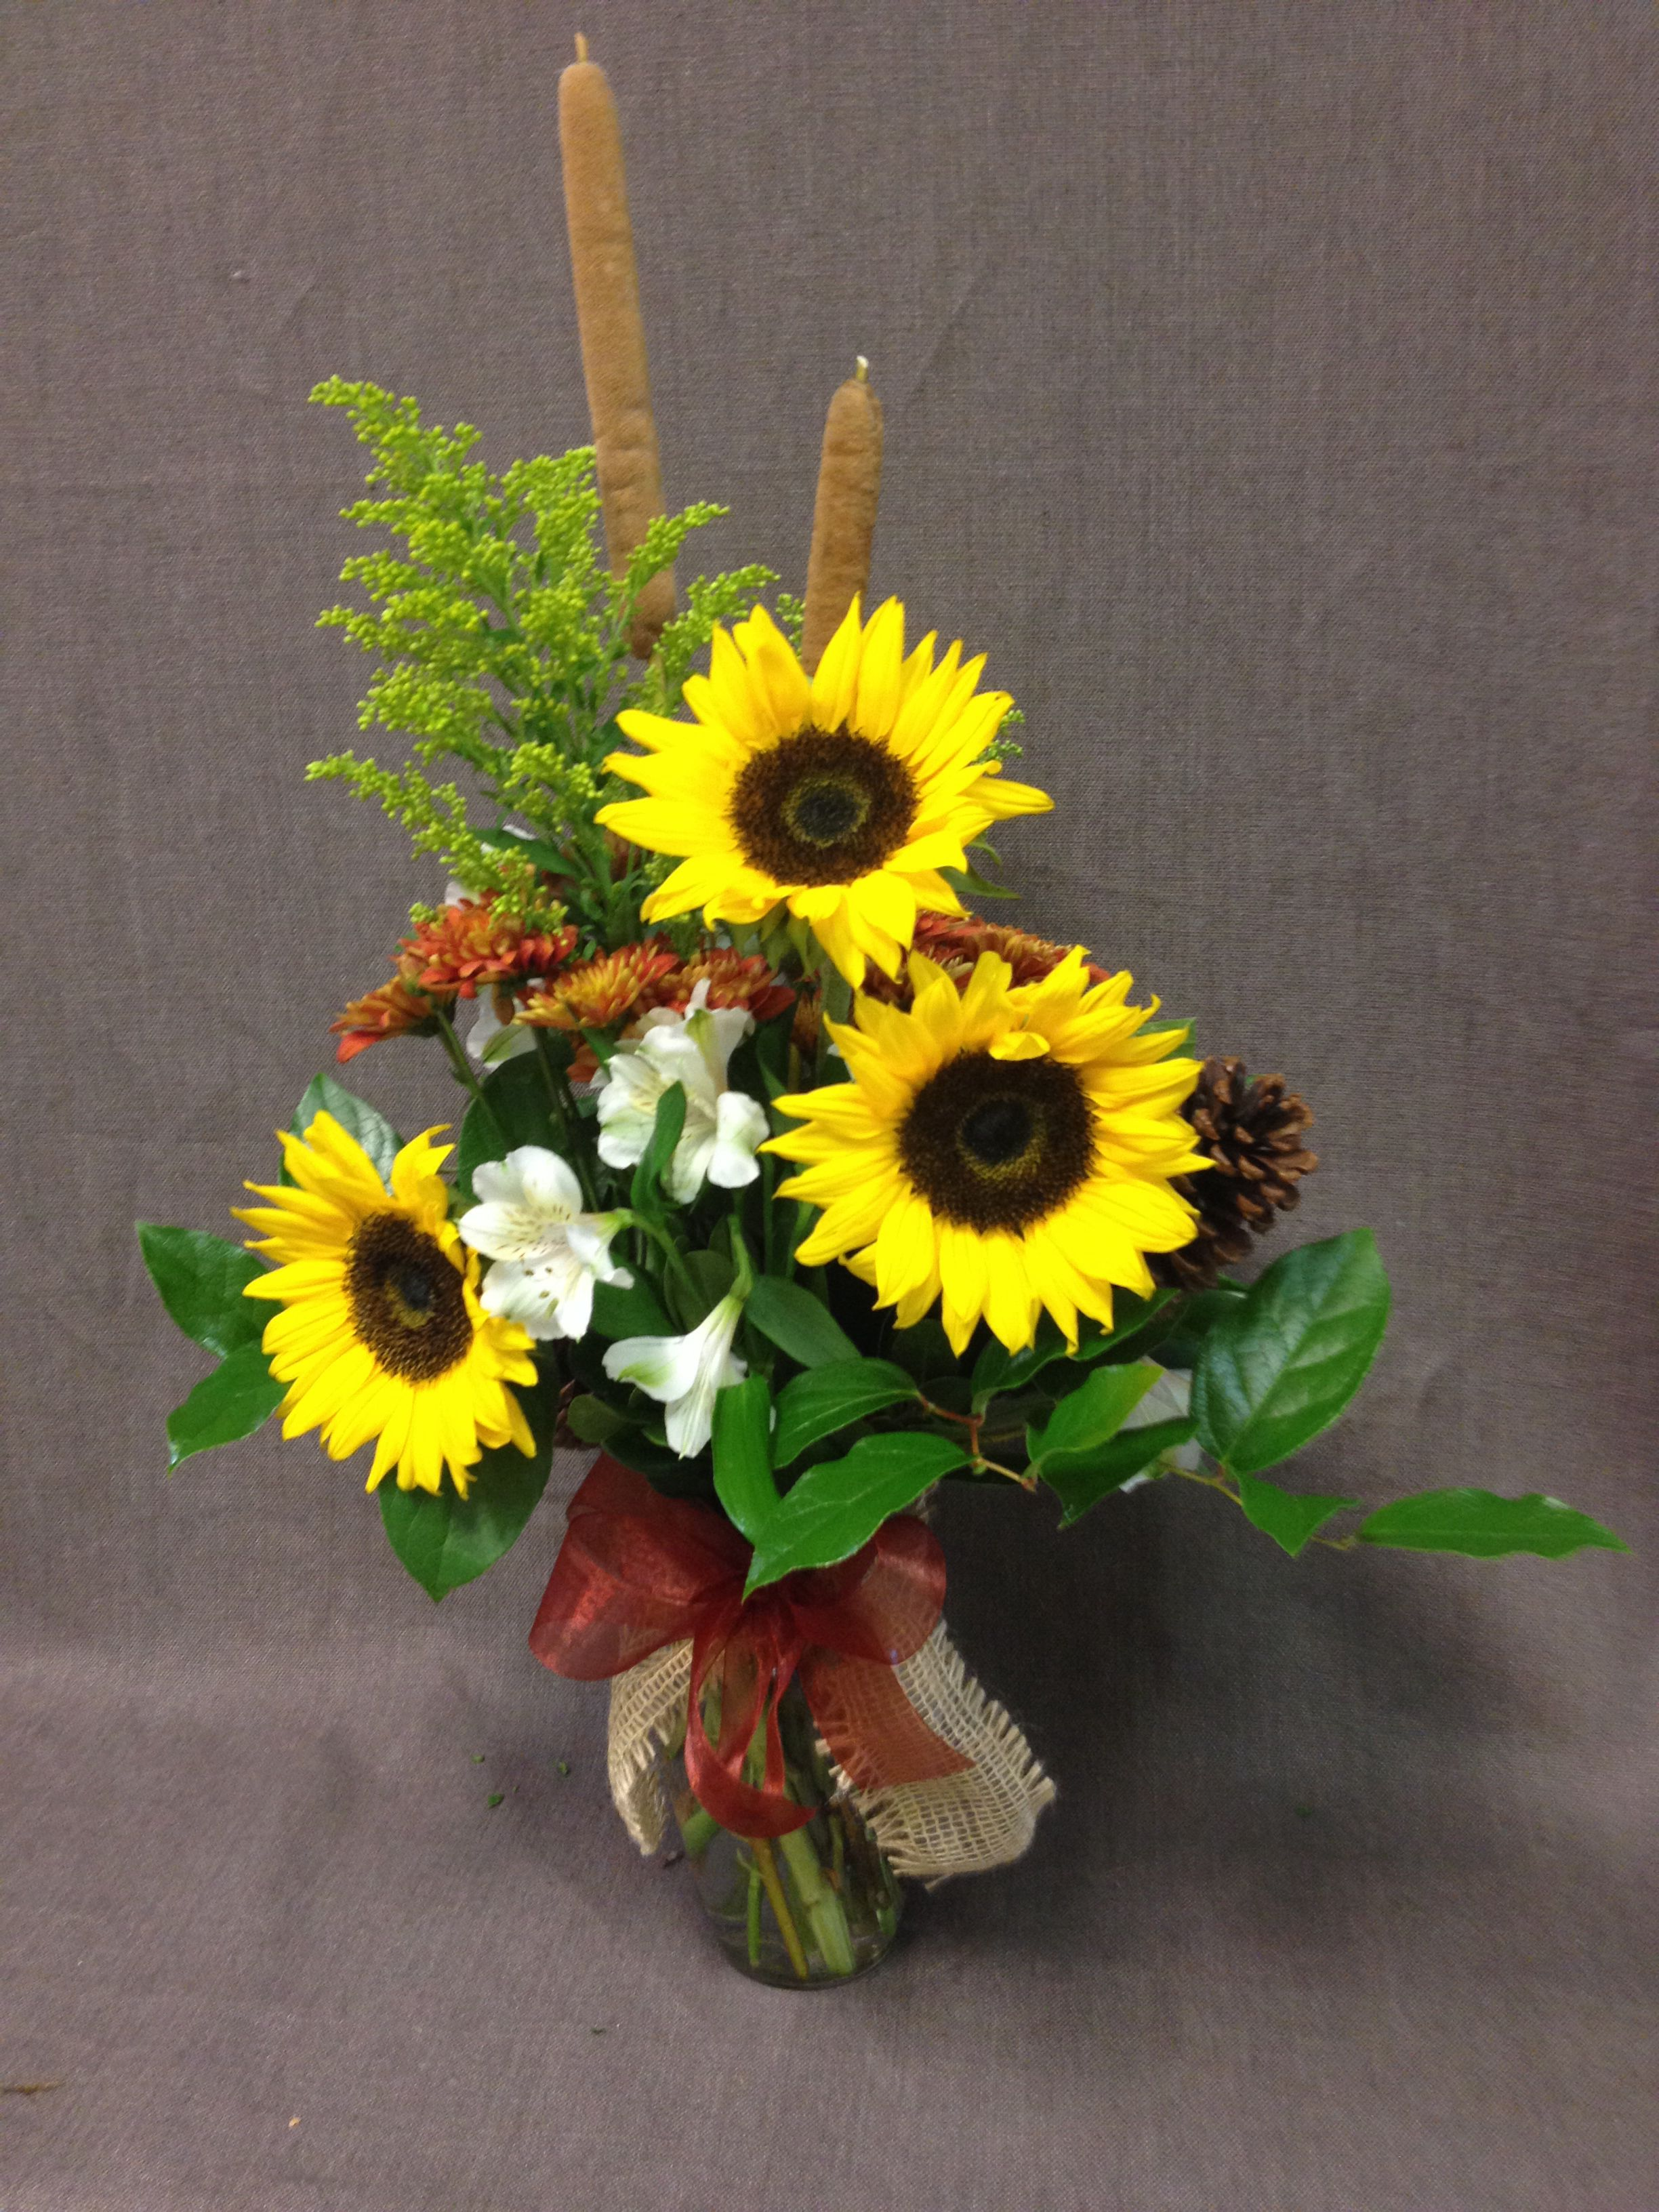 Arrangement at work with sunflowers cat tails and pine